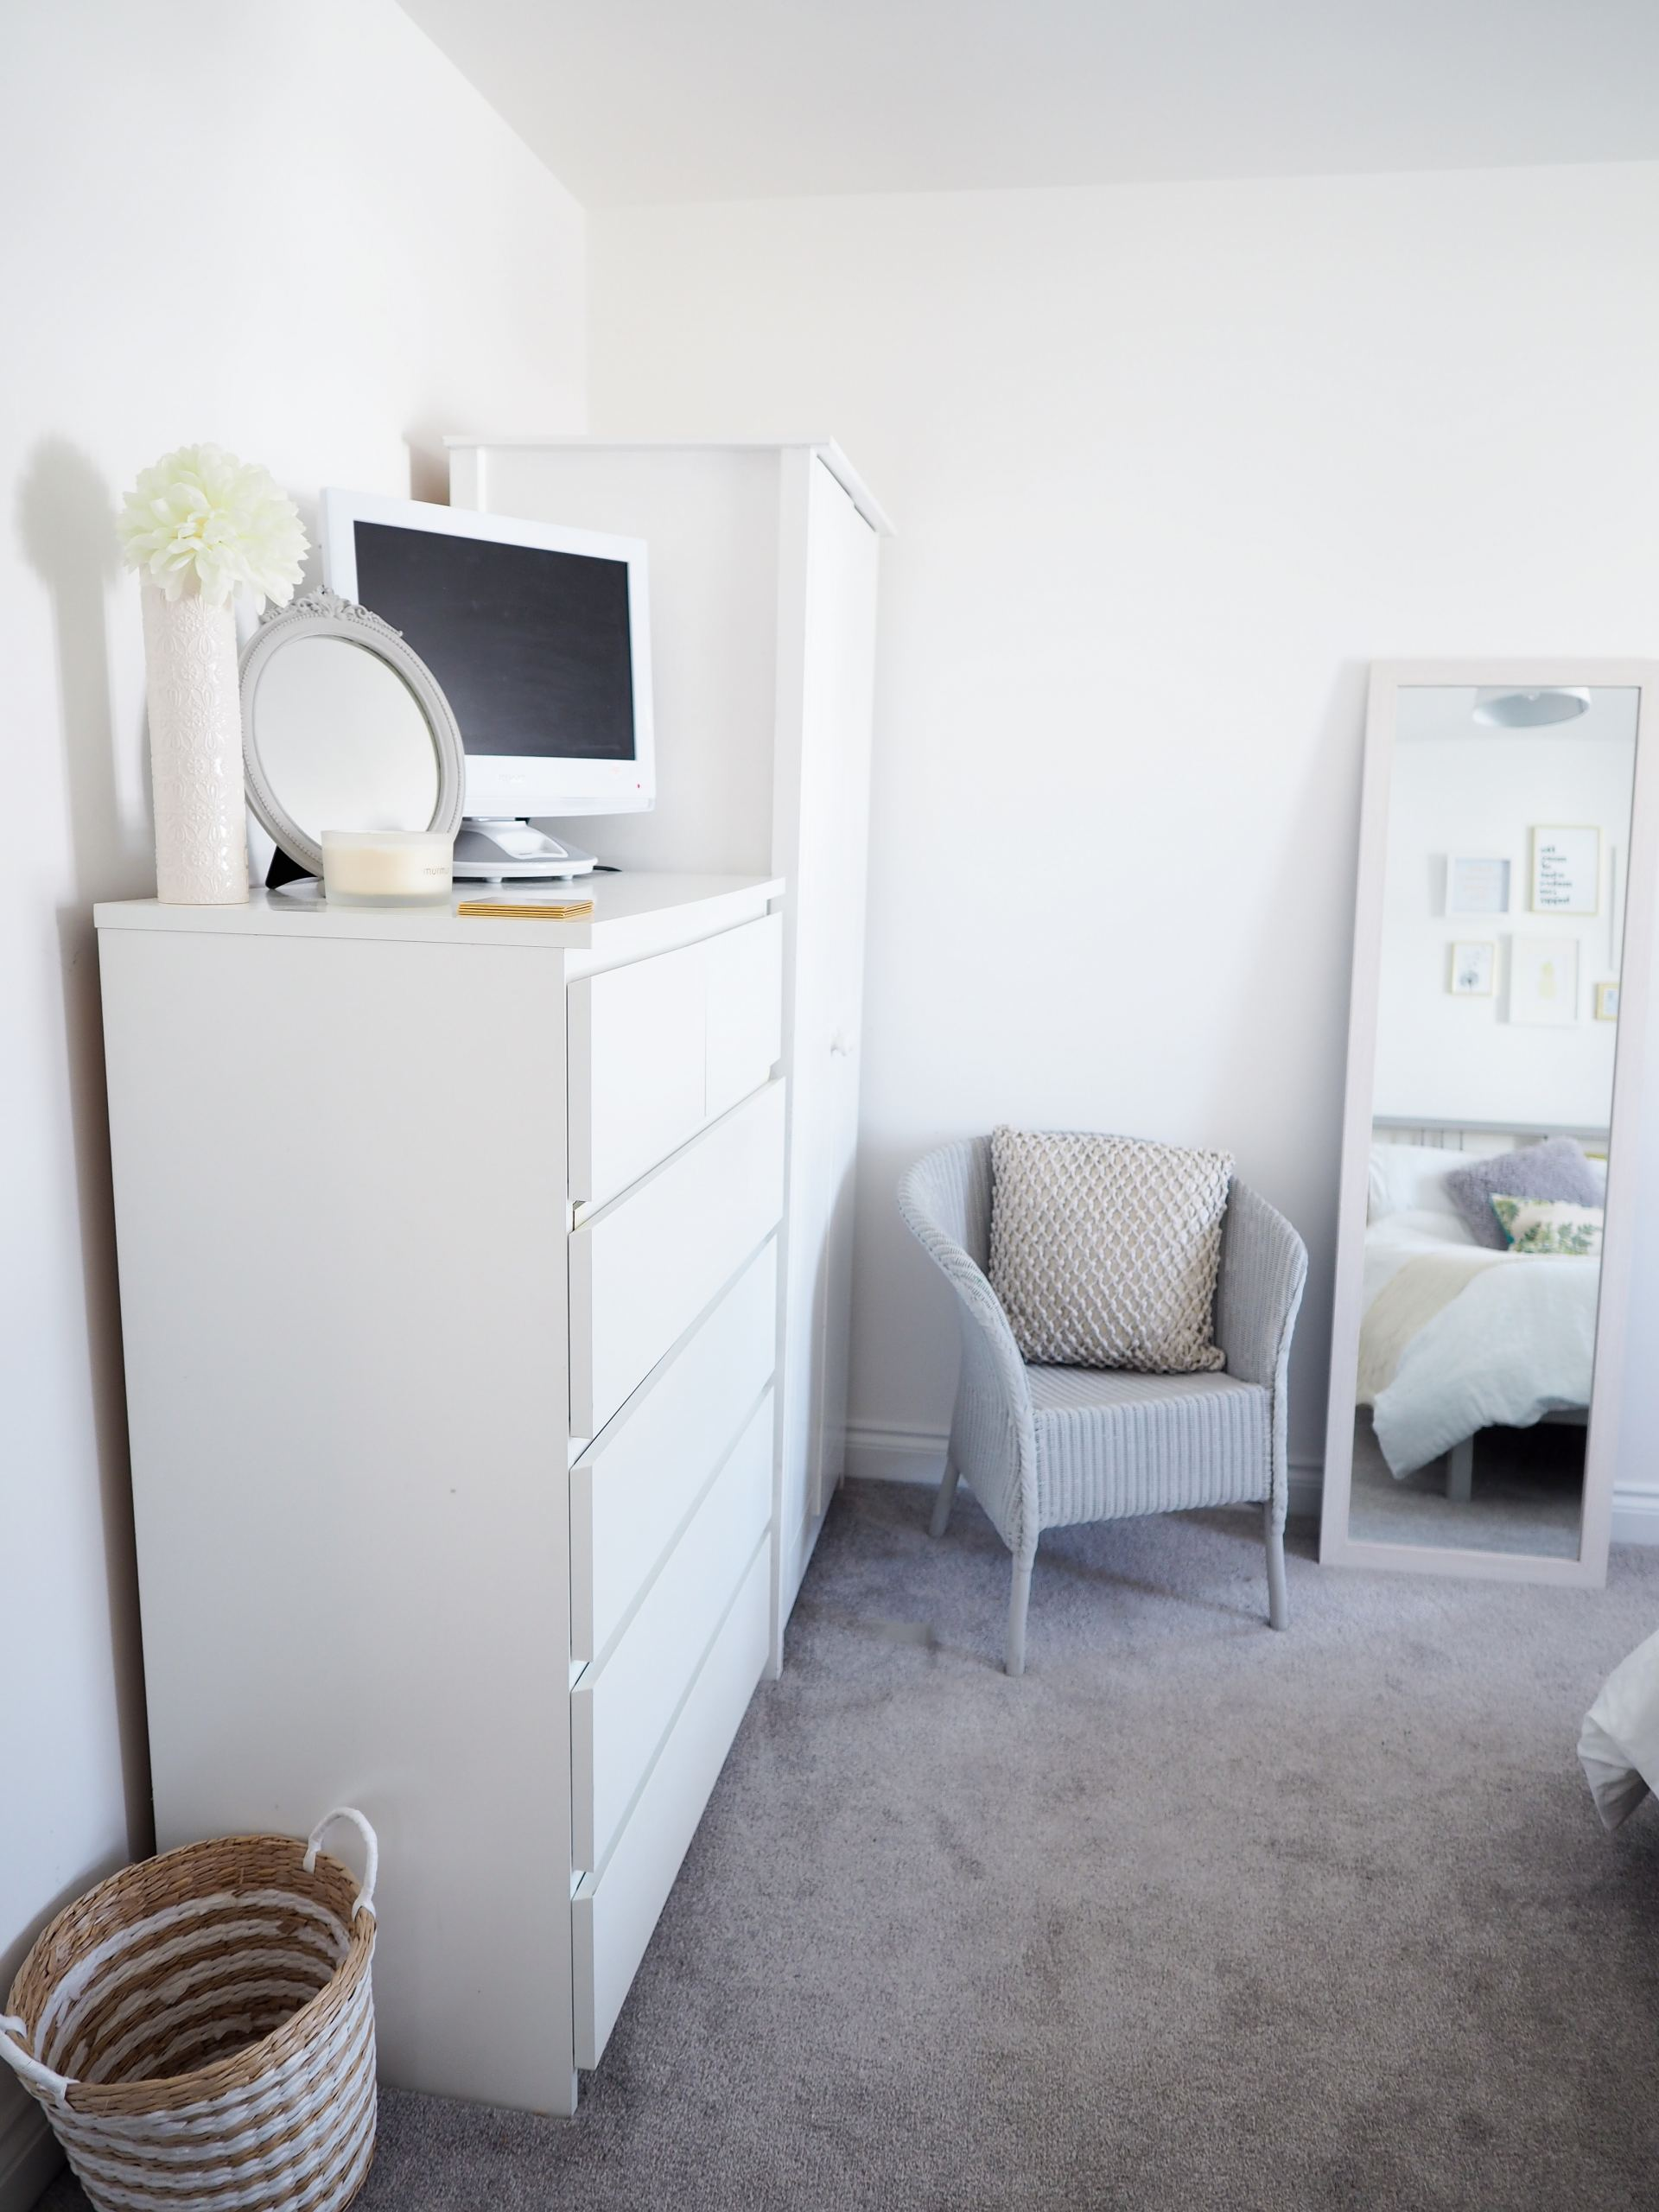 bangonstyle home spare room makeover